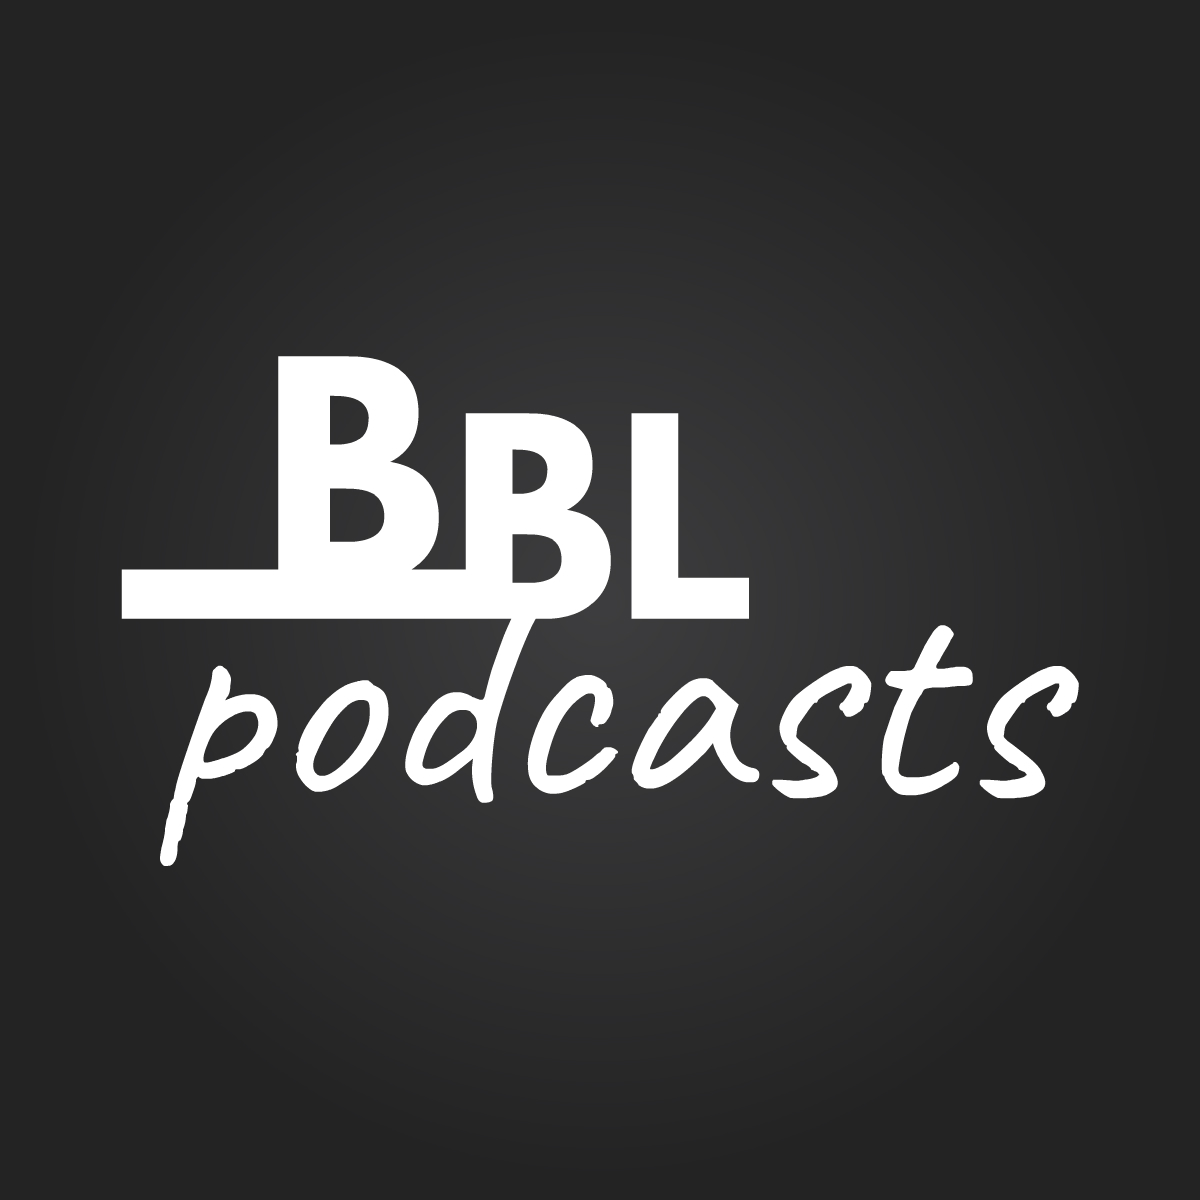 BBL Podcast